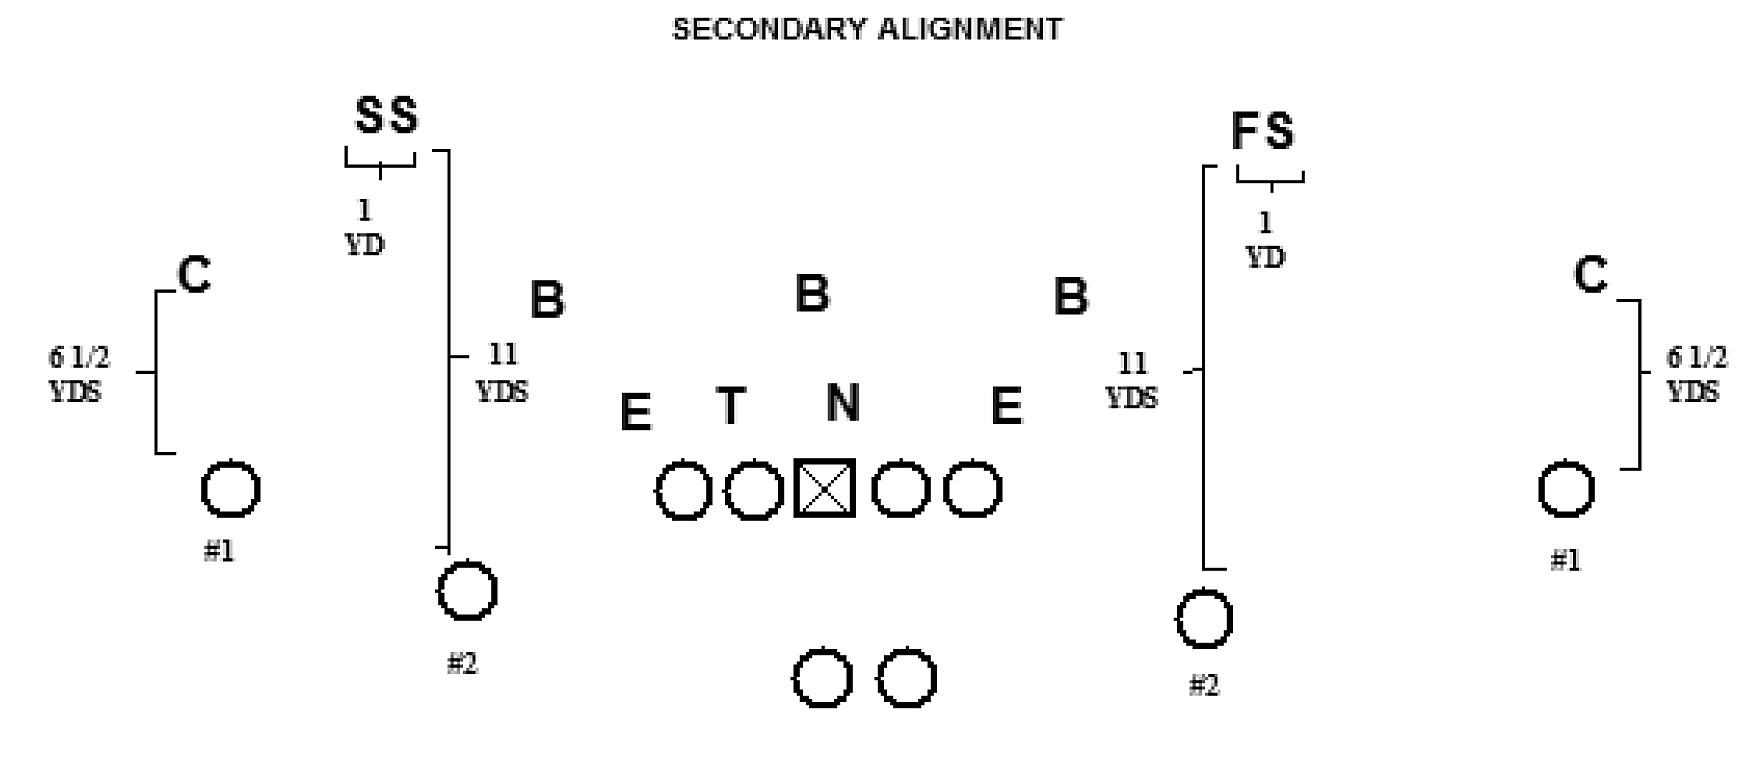 4 4 Defense Alignment